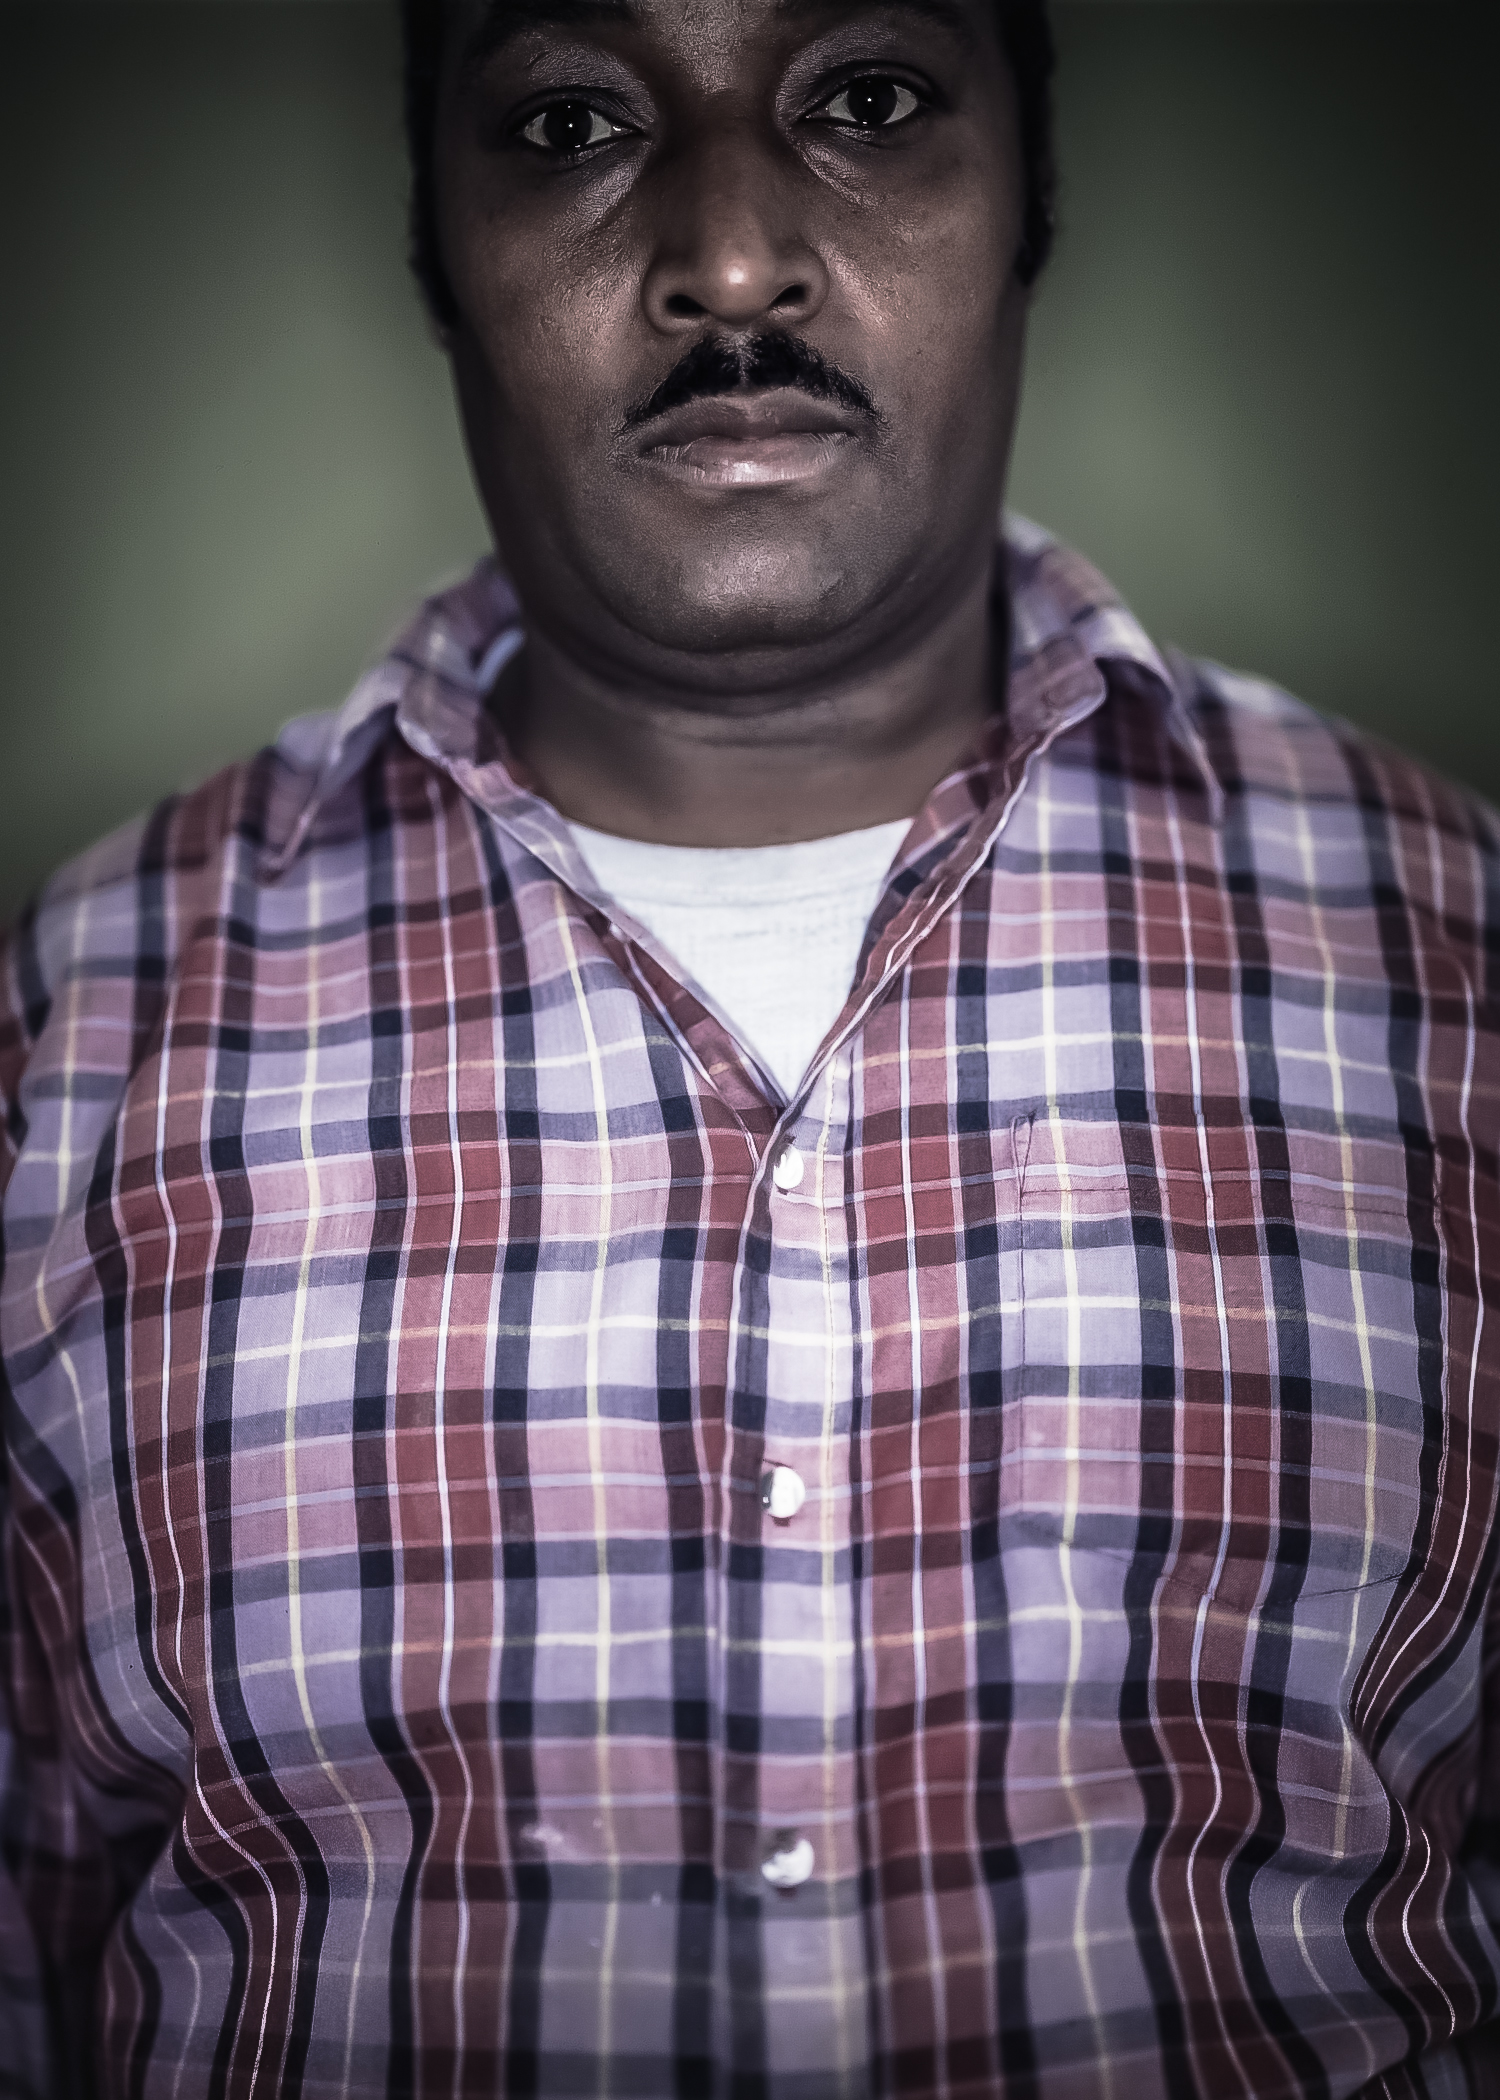 editorial photographer based in Memphis,TN©2013 Chip Pankey .jpg